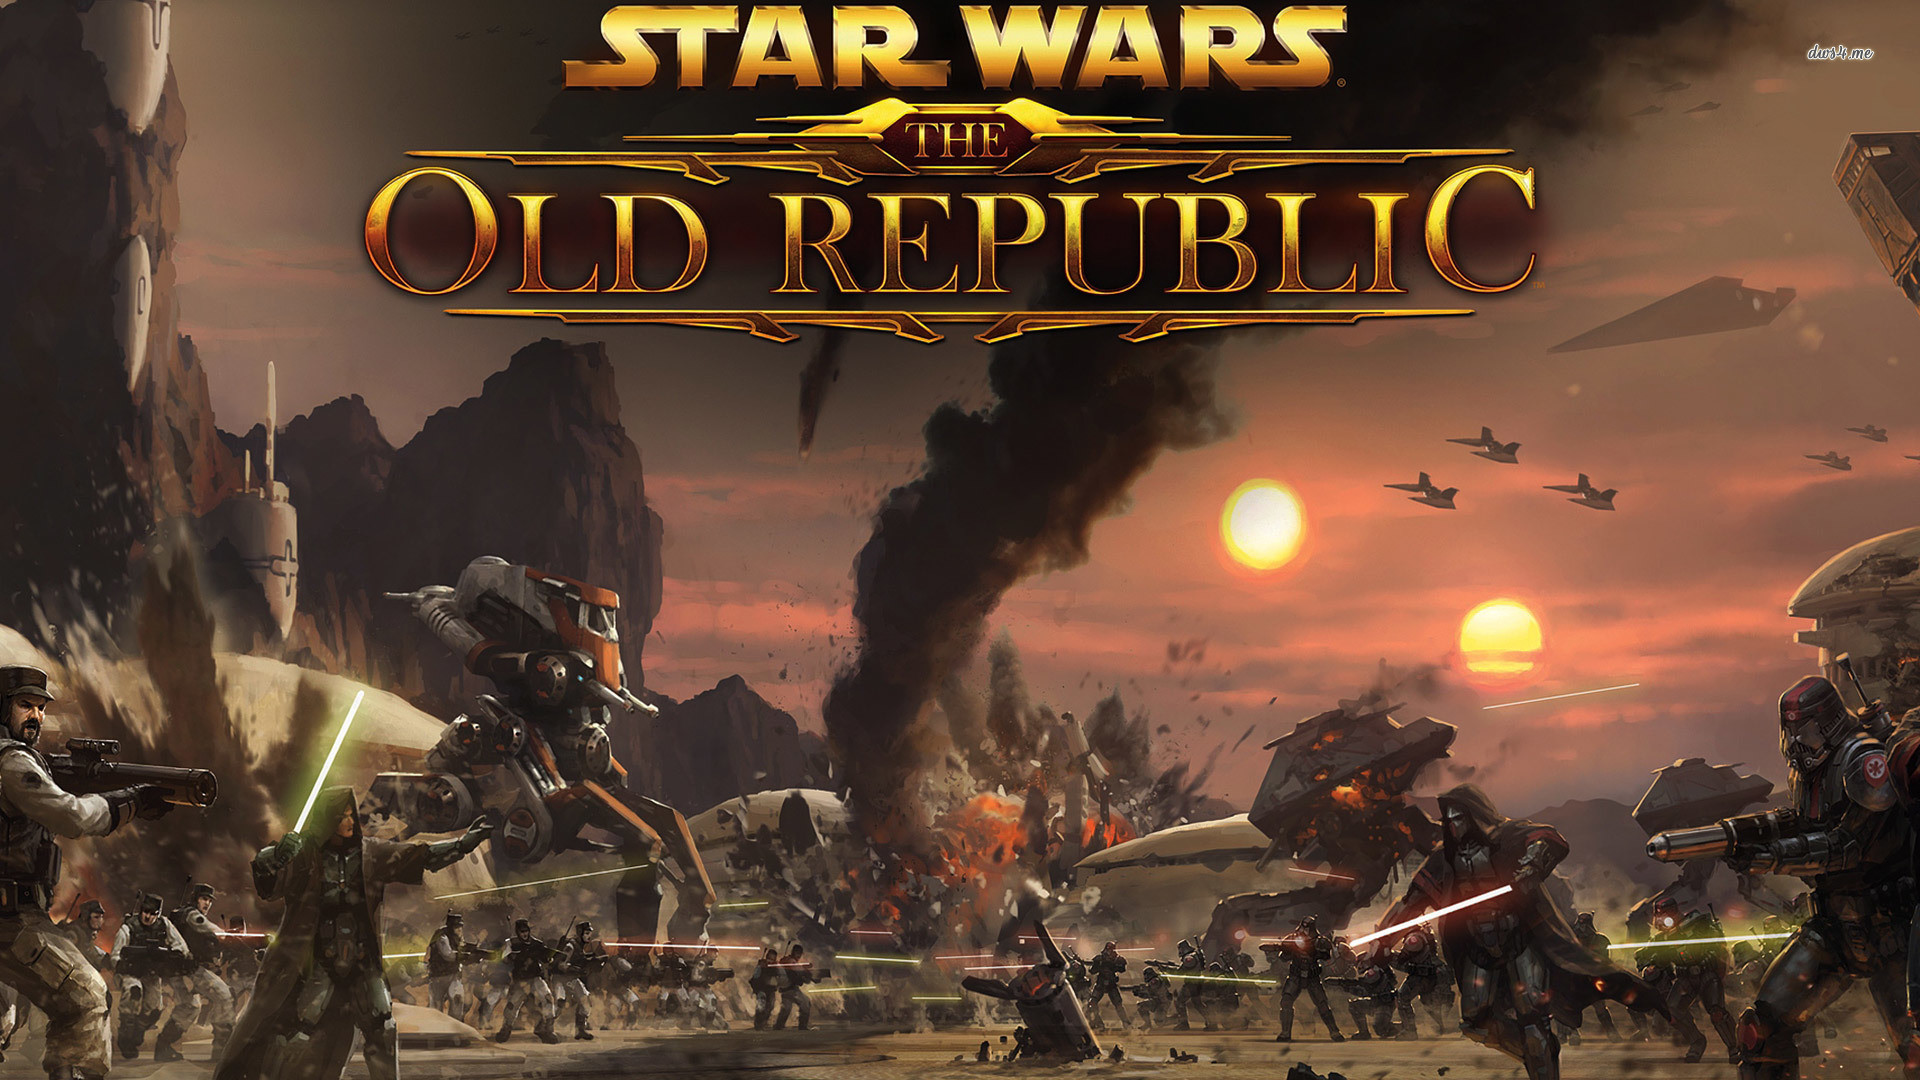 1920x1080 Star Wars: The Old Republic Full HD Wallpaper